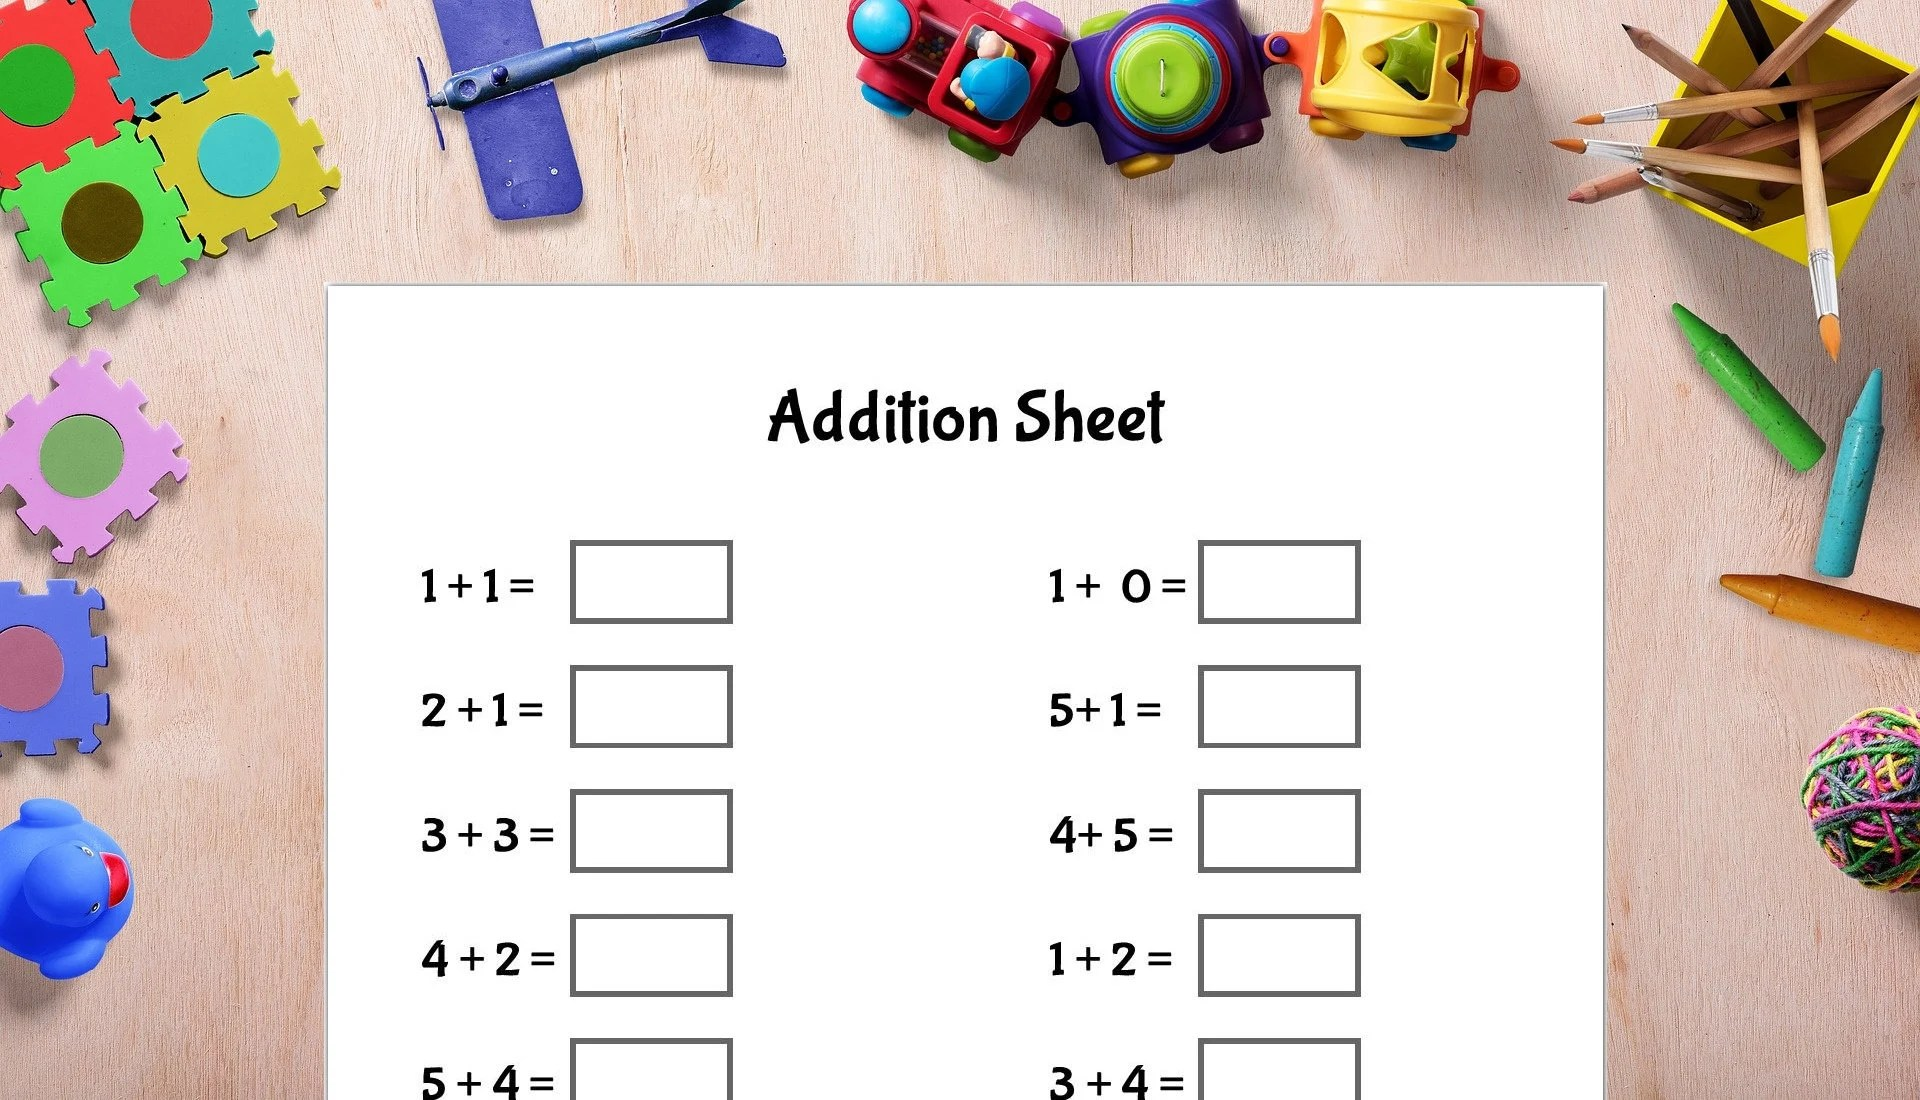 Math Sheets Printable Addition Table Subtraction Etsy - subtraction table